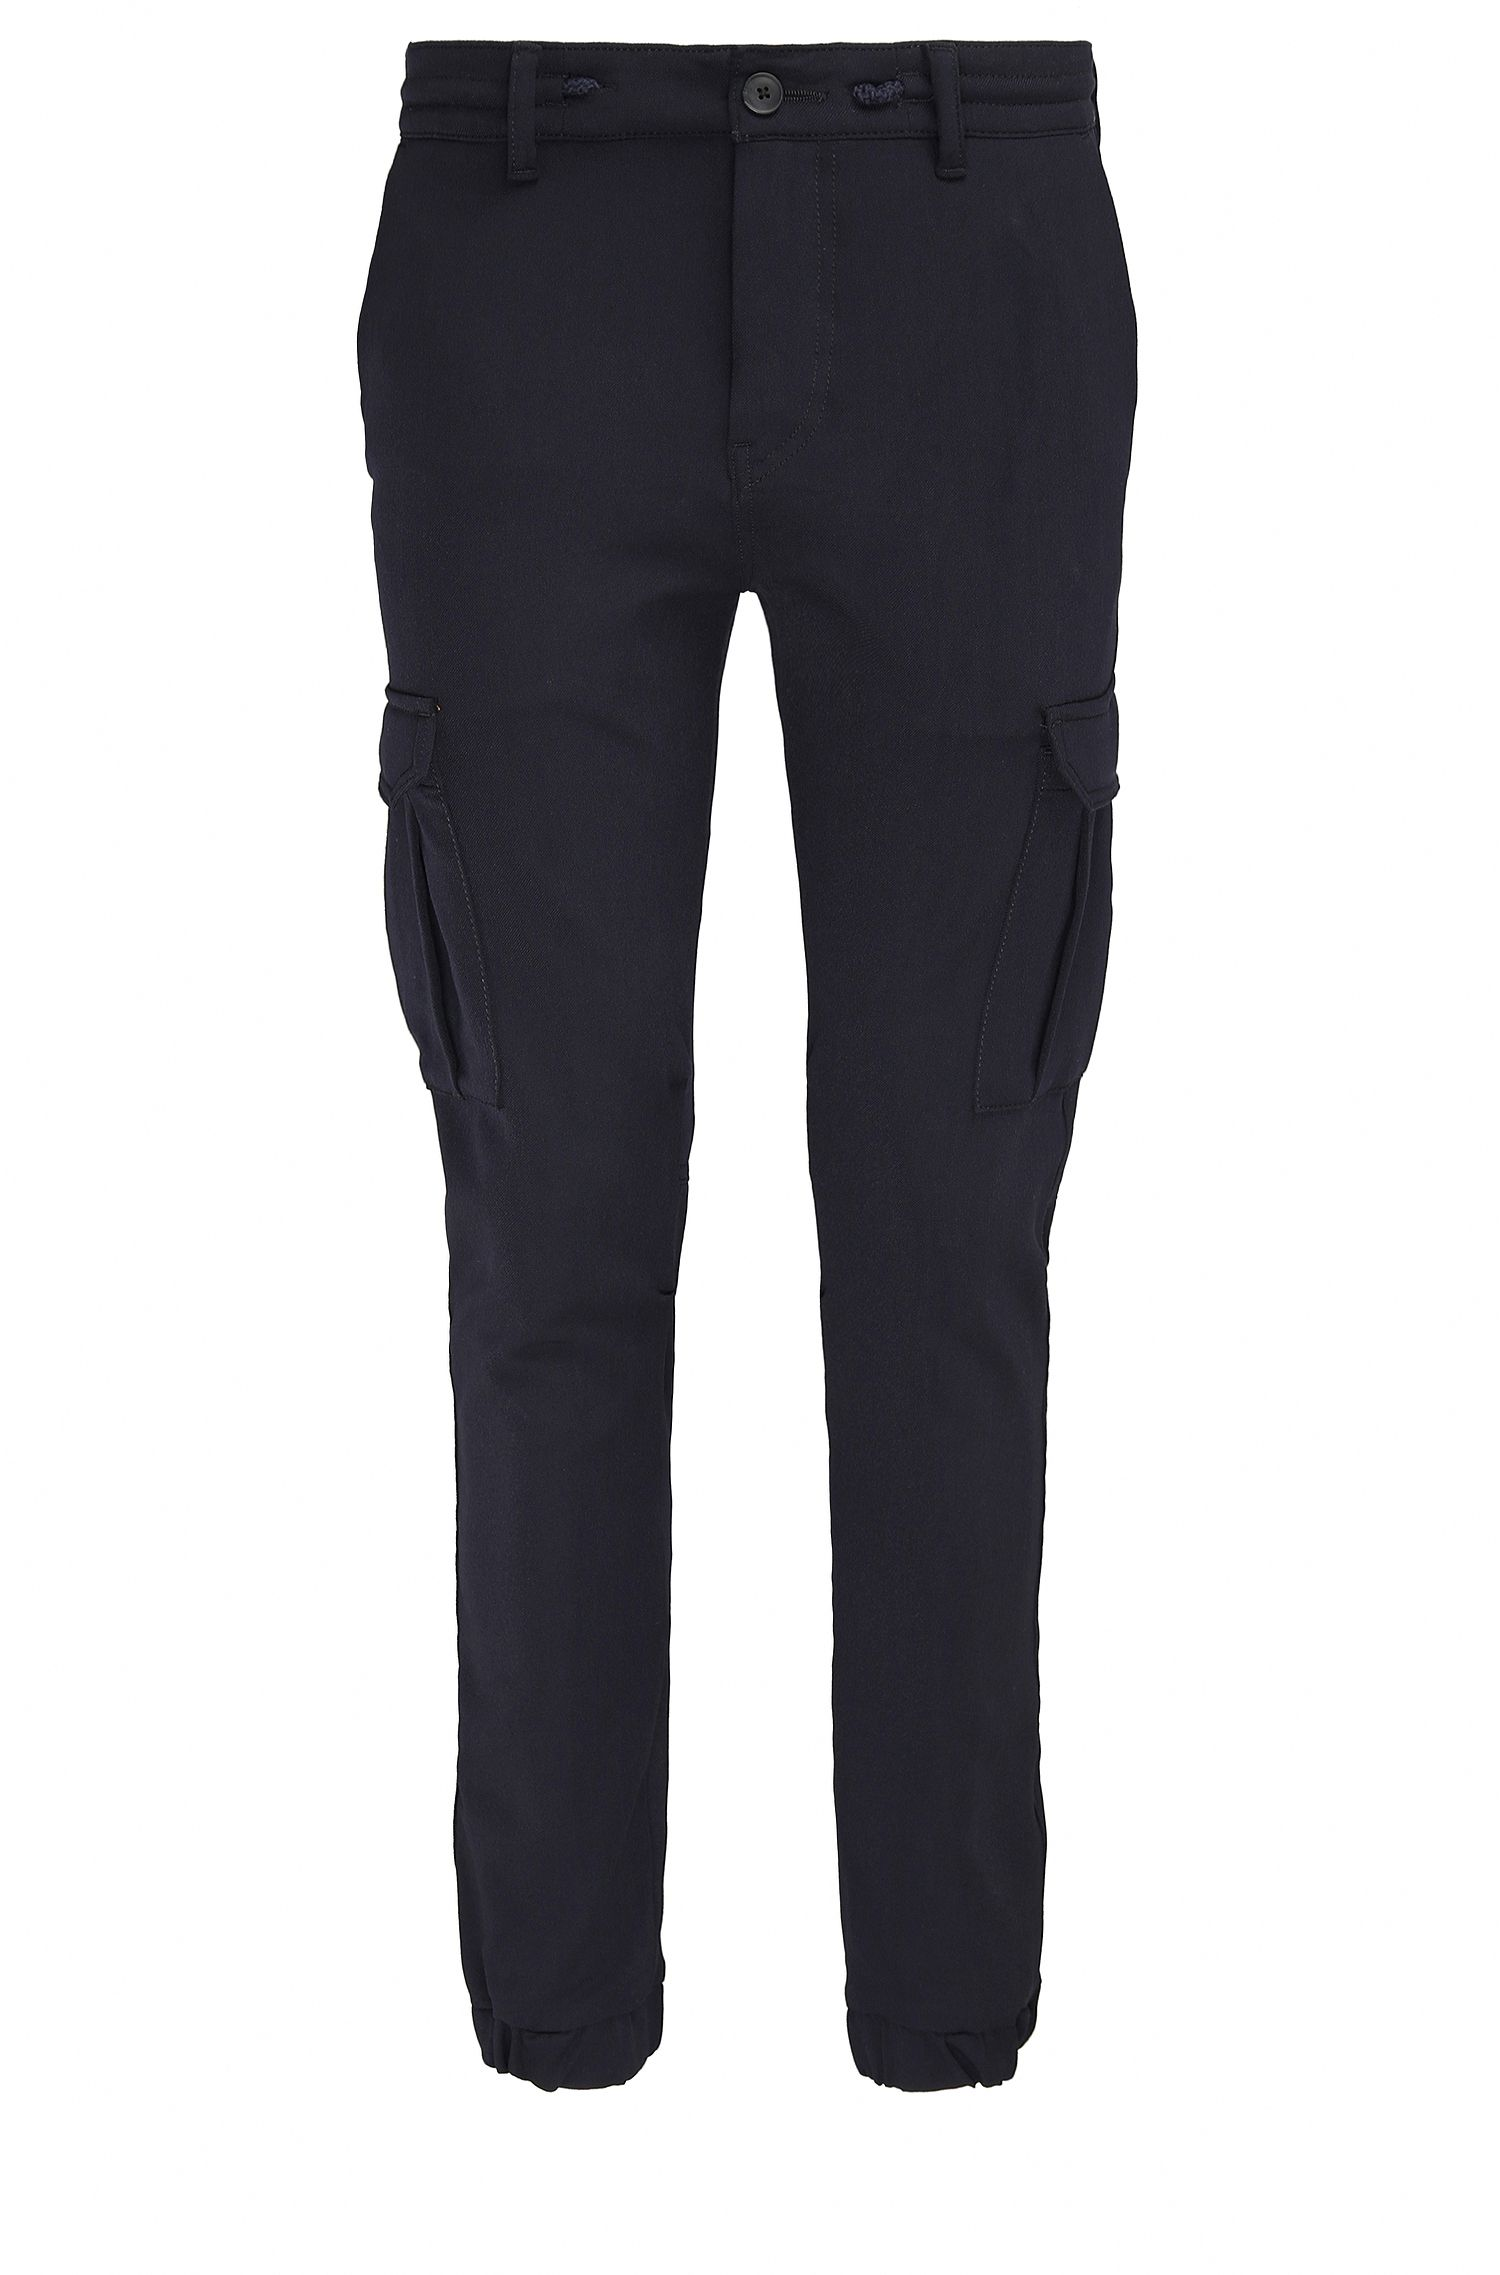 Twill Cargo Pant, Tapered Fit | Shay, Dark Blue